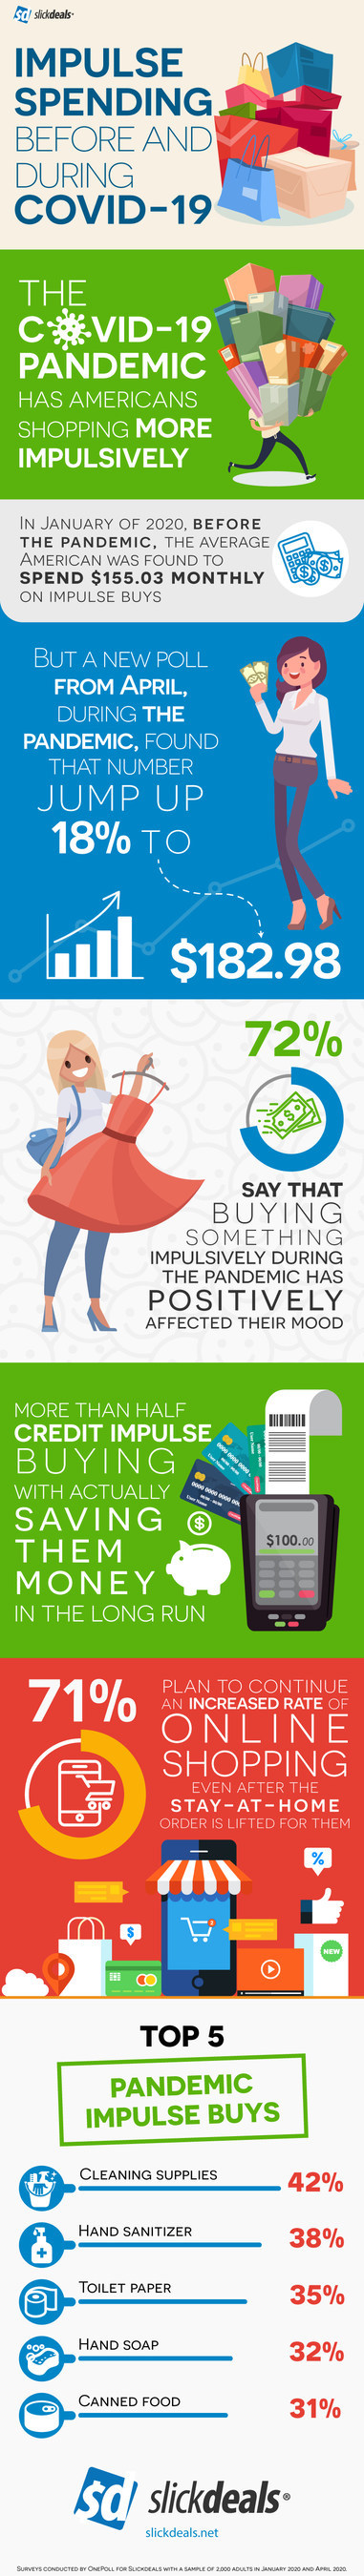 New survey reveals impulse spending increased by 18 percent during the COVID-19 pandemic